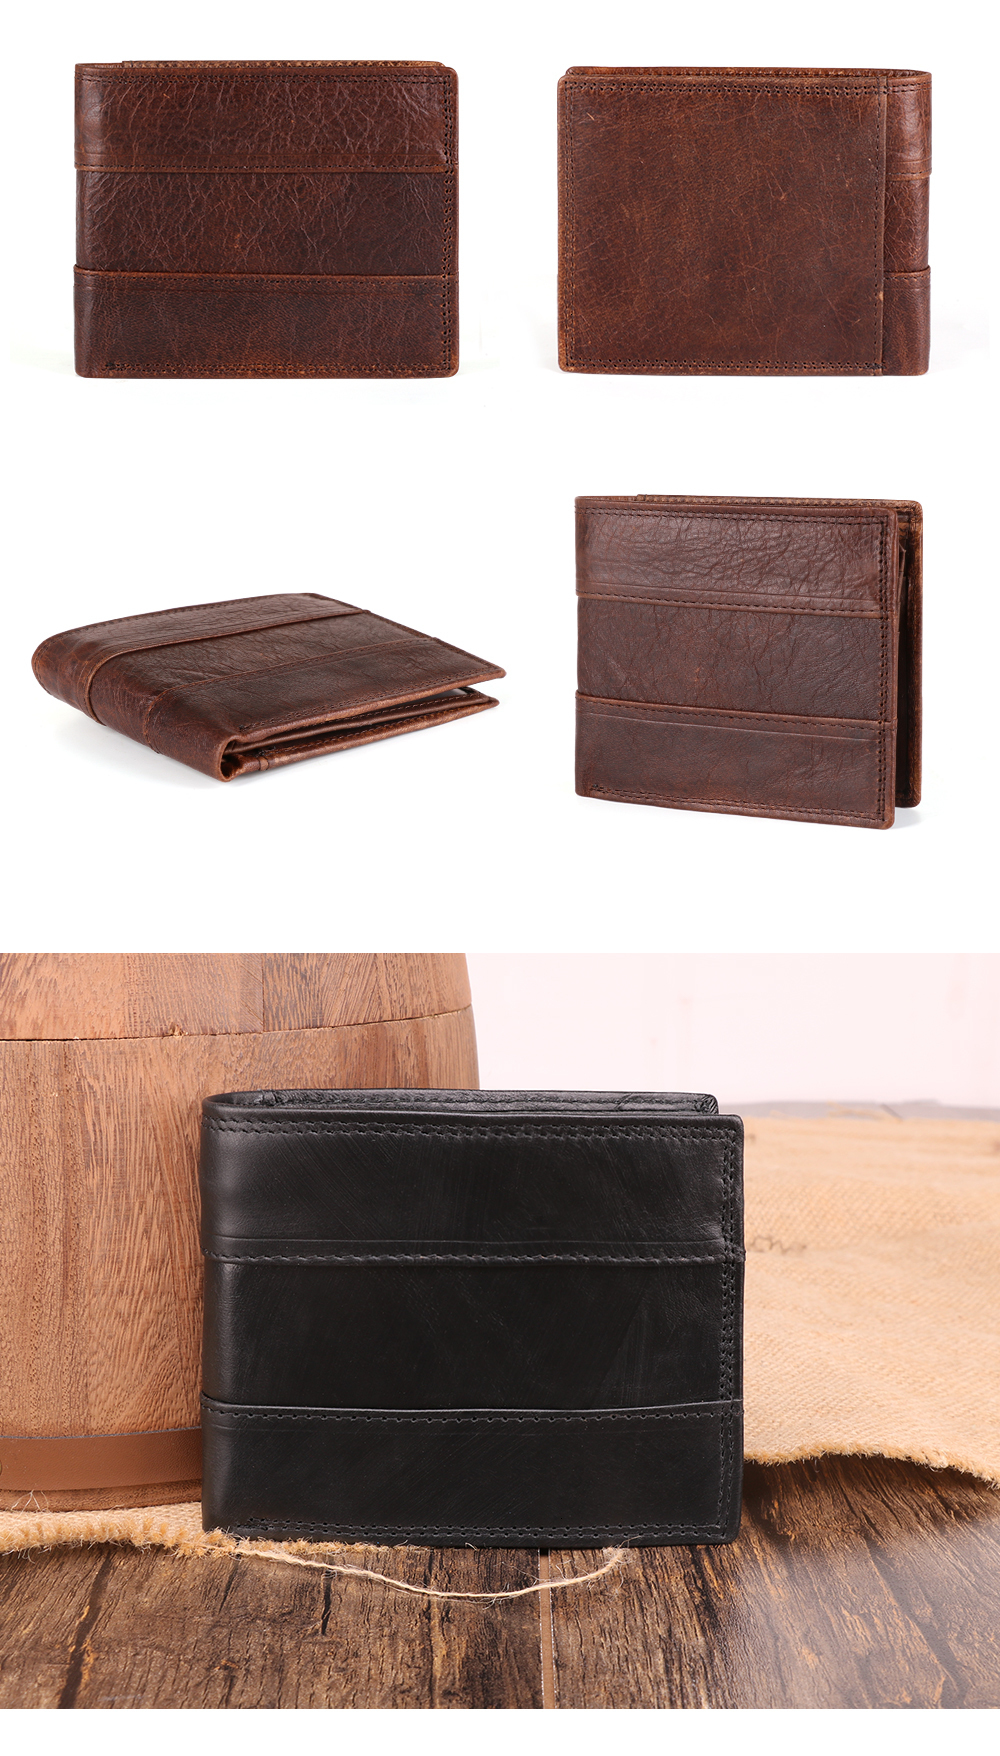 Ha568615c15824fbaa3f5c8a03523002ed - GENODERN Cow Leather Men Wallets with Coin Pocket Vintage Male Purse Function Brown Genuine Leather Men Wallet with Card Holders